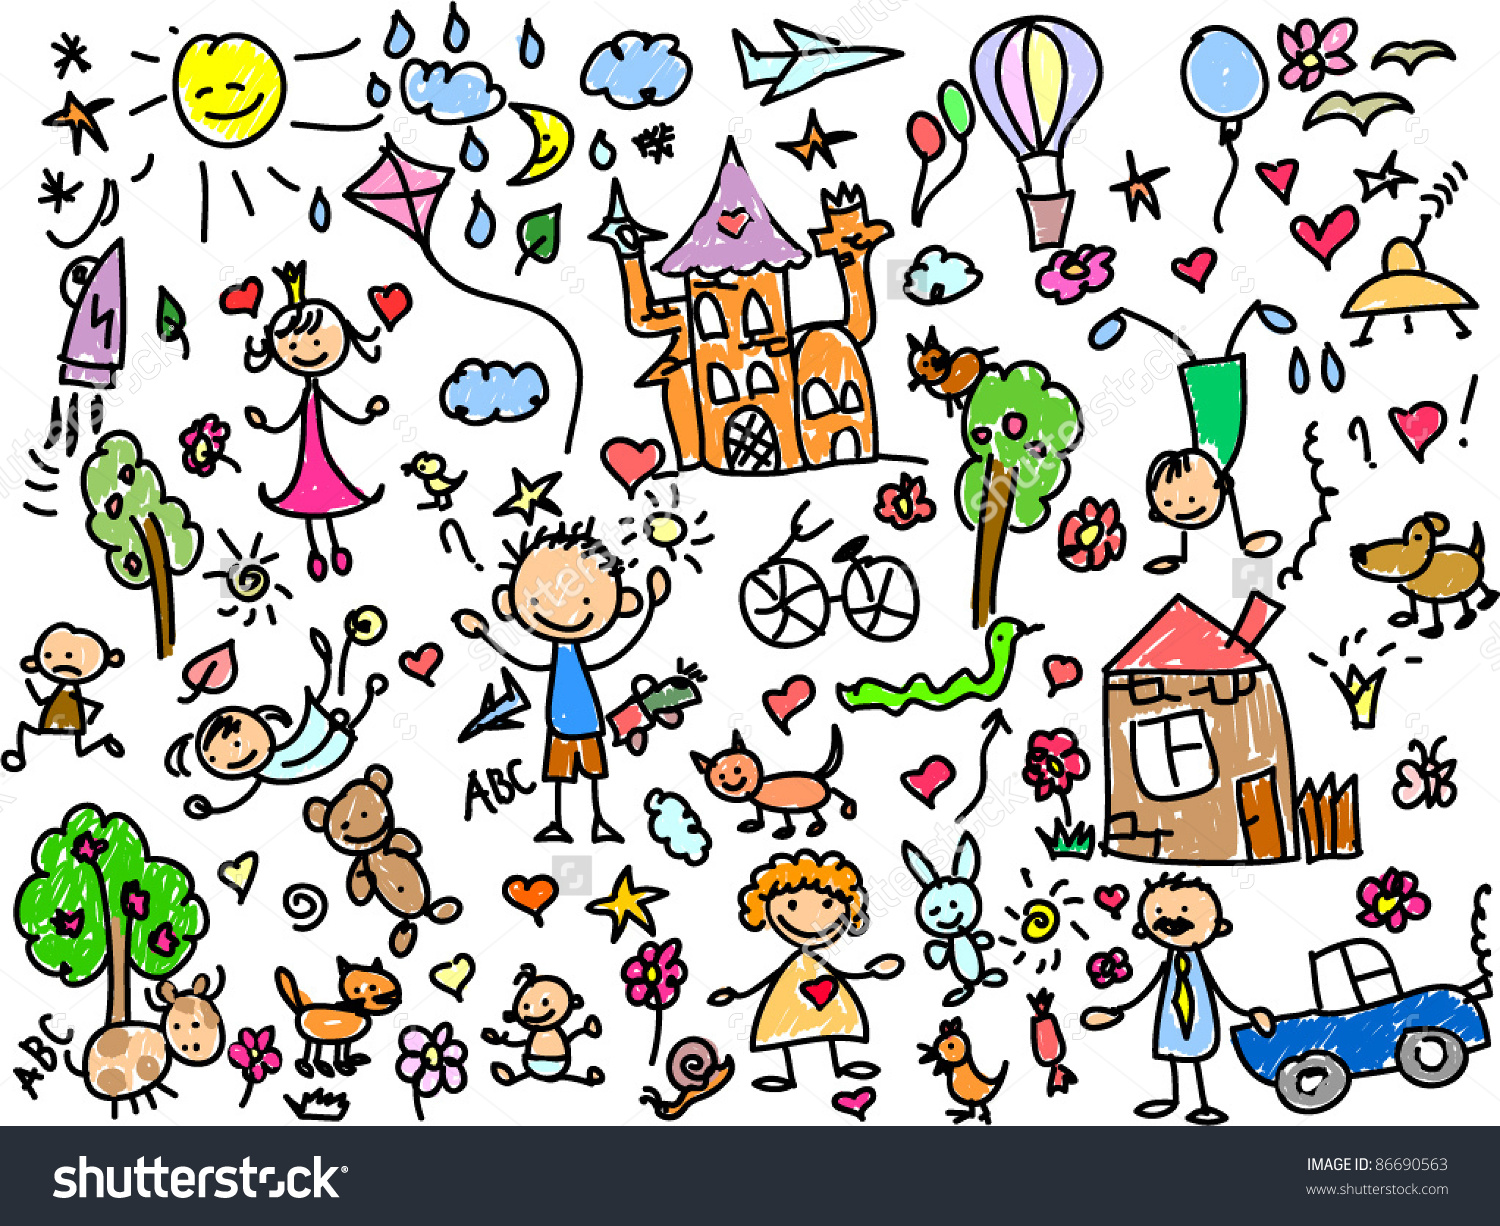 Childrens Drawings Stock Vector 86690563.